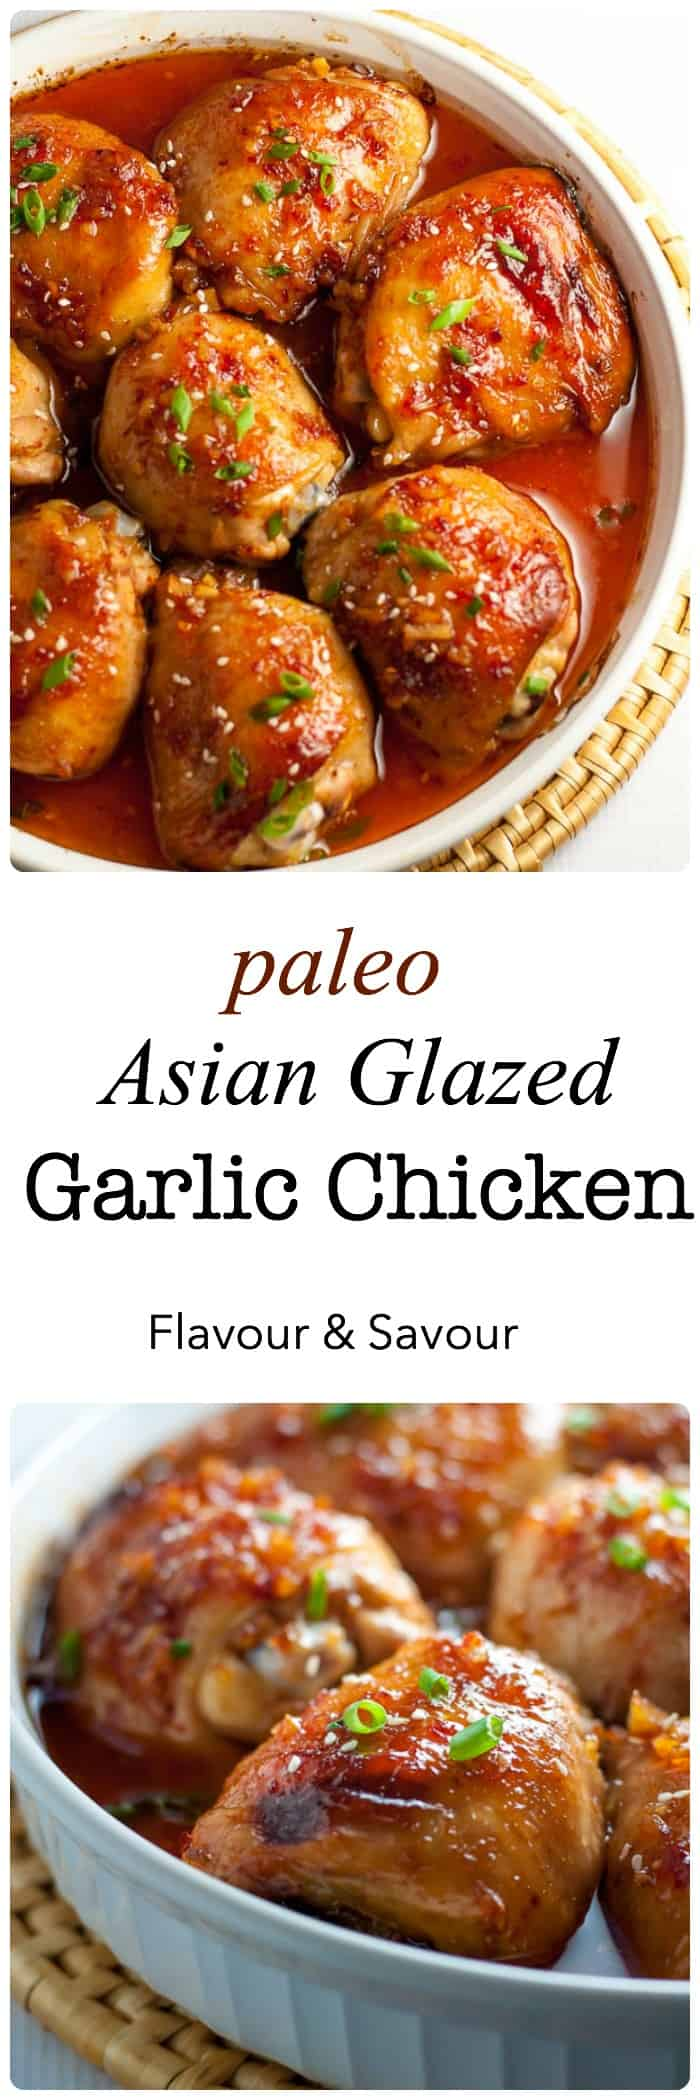 This Paleo Asian Glazed Garlic Chicken is so easy! Tender, juicy chicken thighs glazed with an Asian-inspired sauce with a little heat and hints of garlic, sesame and ginger. #asian #garlic #chicken #thighs #ginger #sesame #paleo